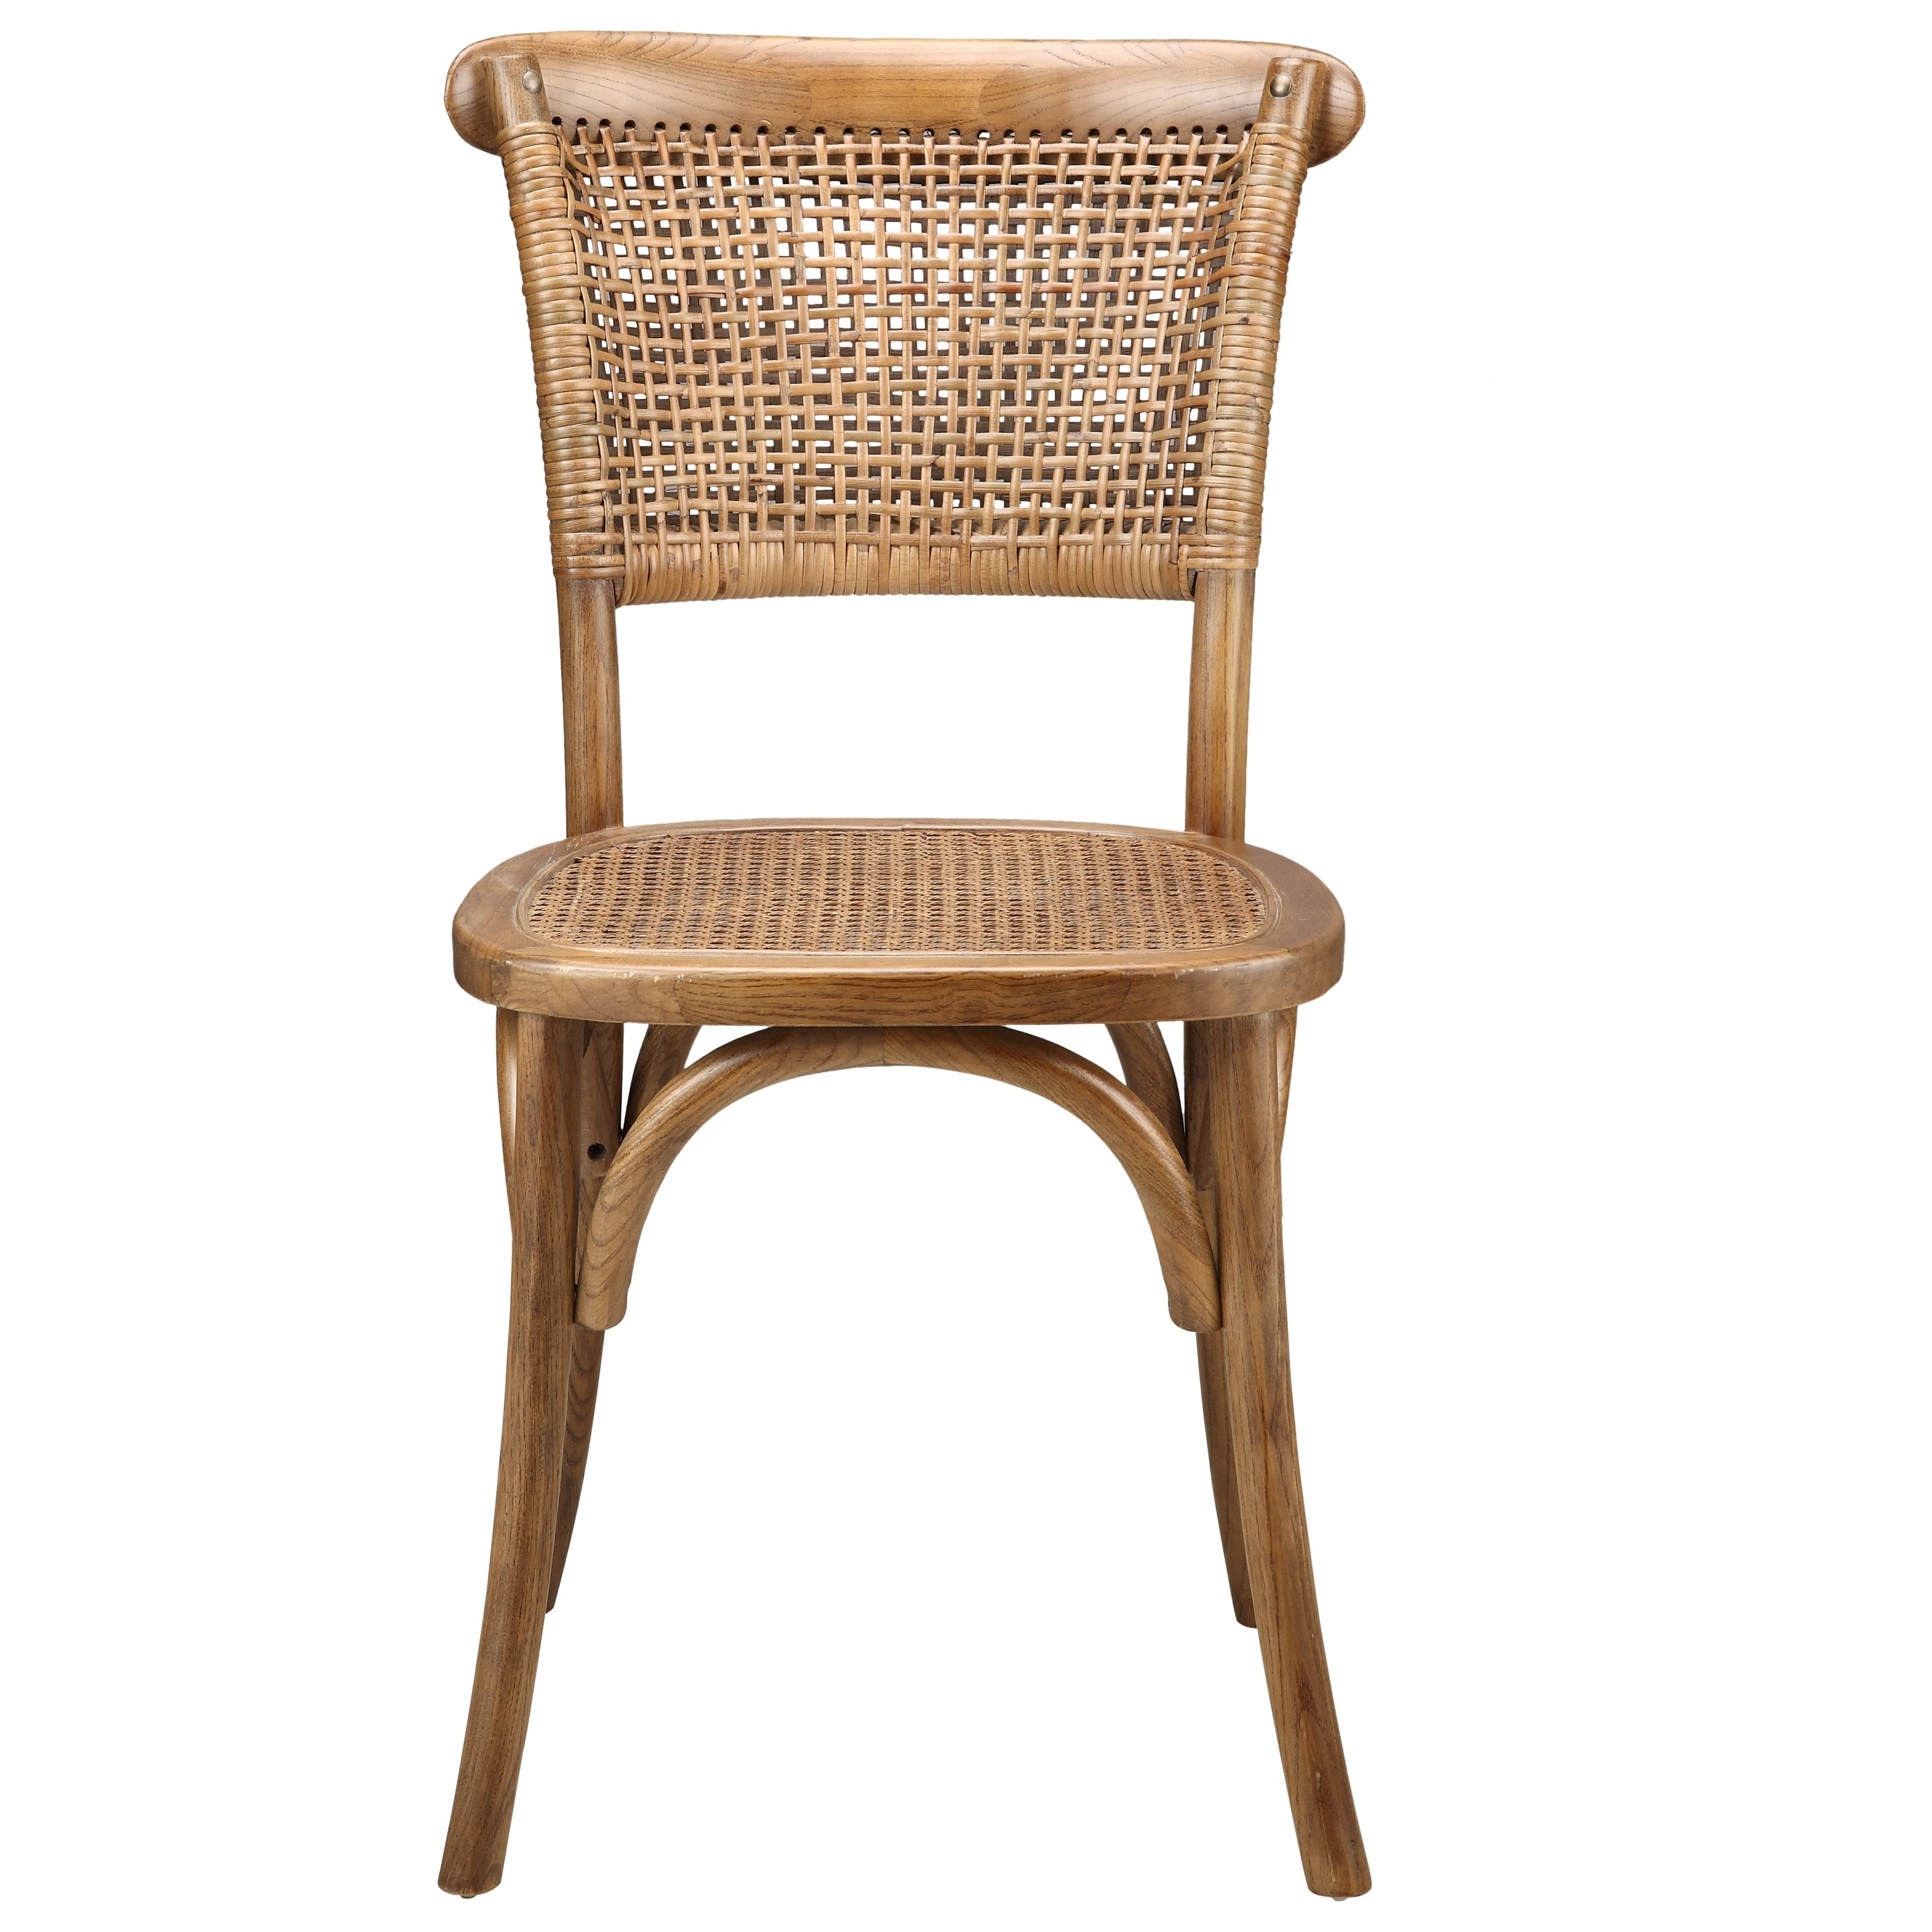 Dining Chairs with Rattan Seat